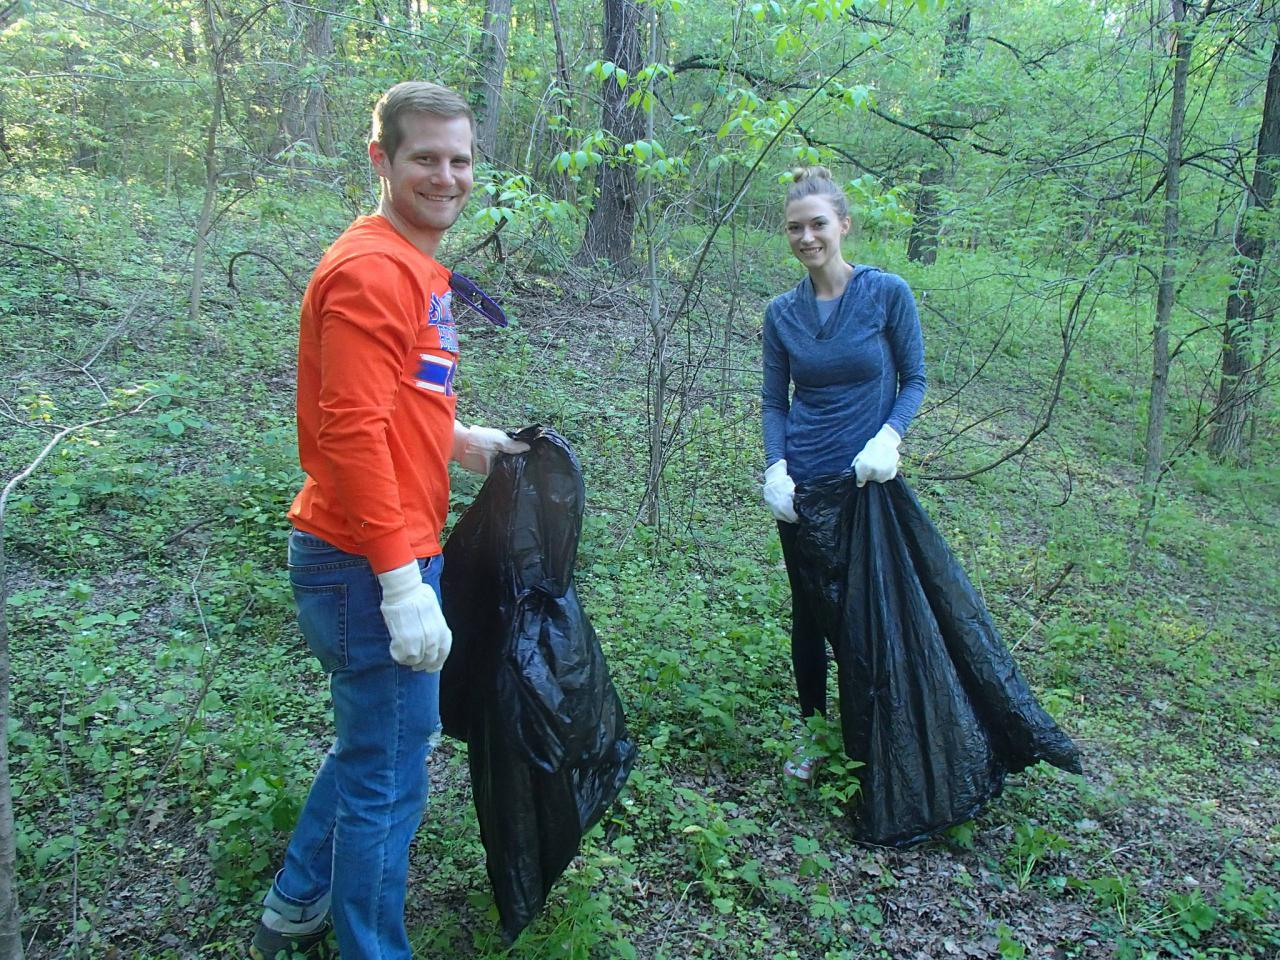 Two volunteers removing invasive species, bag in hand.